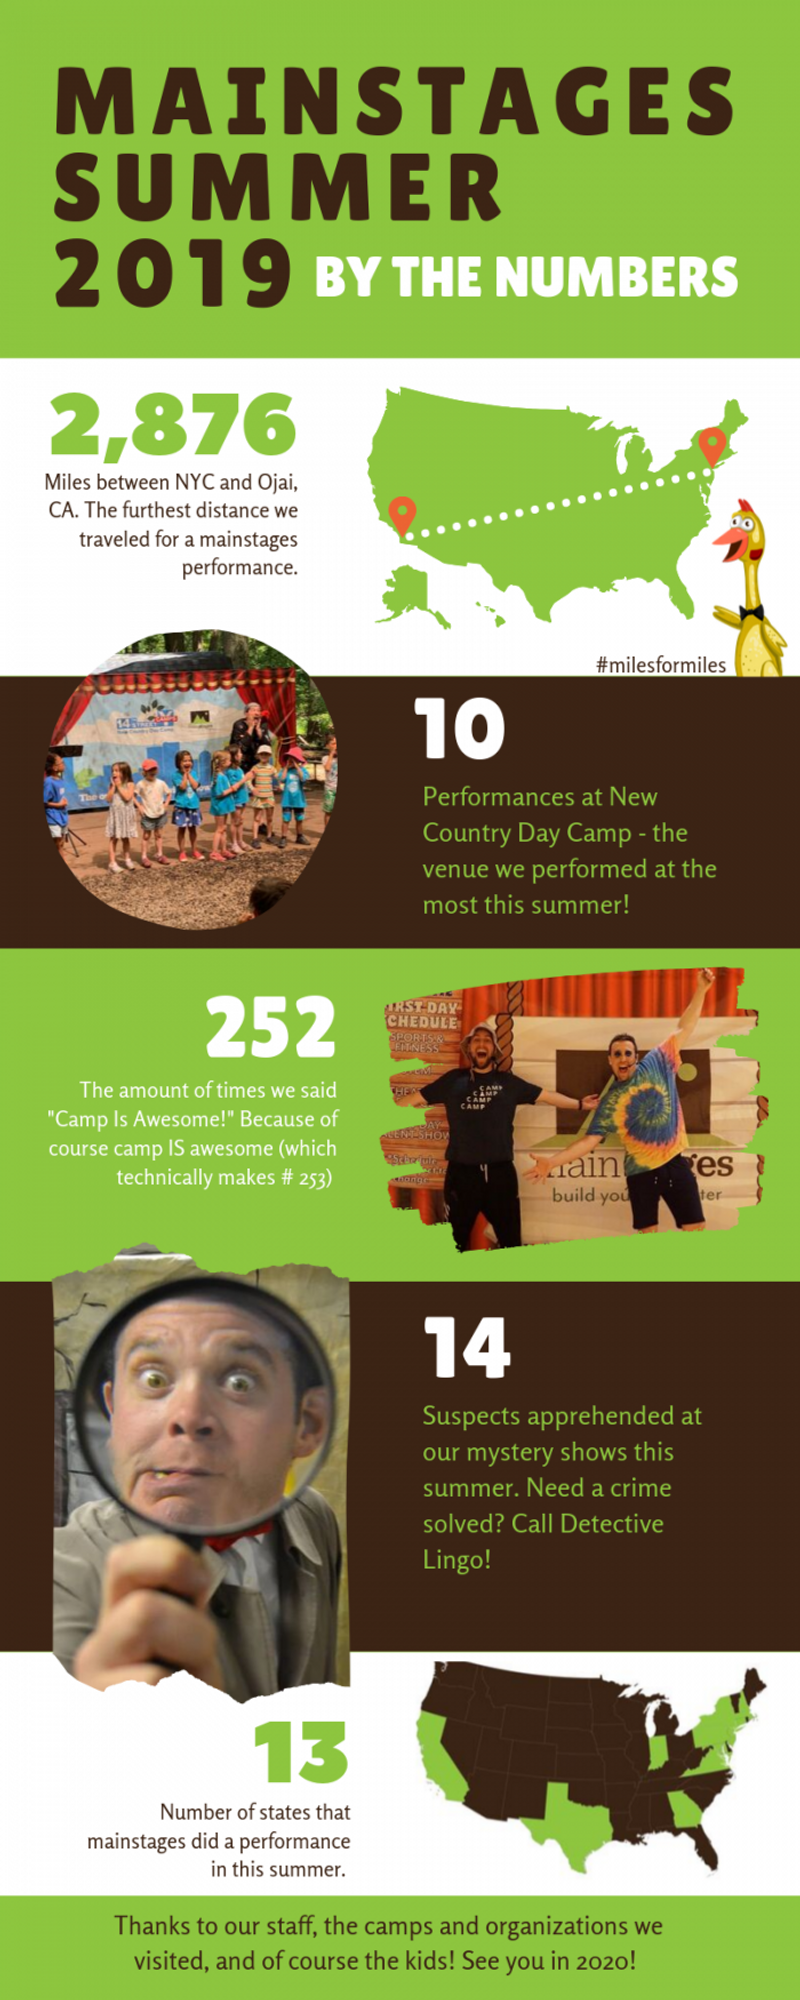 infographic titled 'mainstages summer 2019 by the numbers' image of USA map '2,876 miles between NYC and Ojai, CA. The furthest distance we traveled for a mainstages performance.' Image of kids on stage at a summer camp with a performer making a silly face, '10 performances at New Country Day Camp - the venue we performed at the most this summer!' Image of two performers in camp attire making excited faces and spreading their arms, '252 The amount of times we said 'Camp is Awesome!' because of course camp IS awesome (which technically makes # 253.' Image of a detective making a silly face into a magnifying glass '14 suspects apprehended at our mystery shows this summer. Need a crime solved? Call Detective Lingo!' Image of a map of the USA with 13 states highlighted in green, '13 number of states that mainstages did a performance in this summer.' Text at the bottom of the infographic says 'Thanks to our staff, the camps, and organizations we visited, and of course the kids! See you in 2020!'